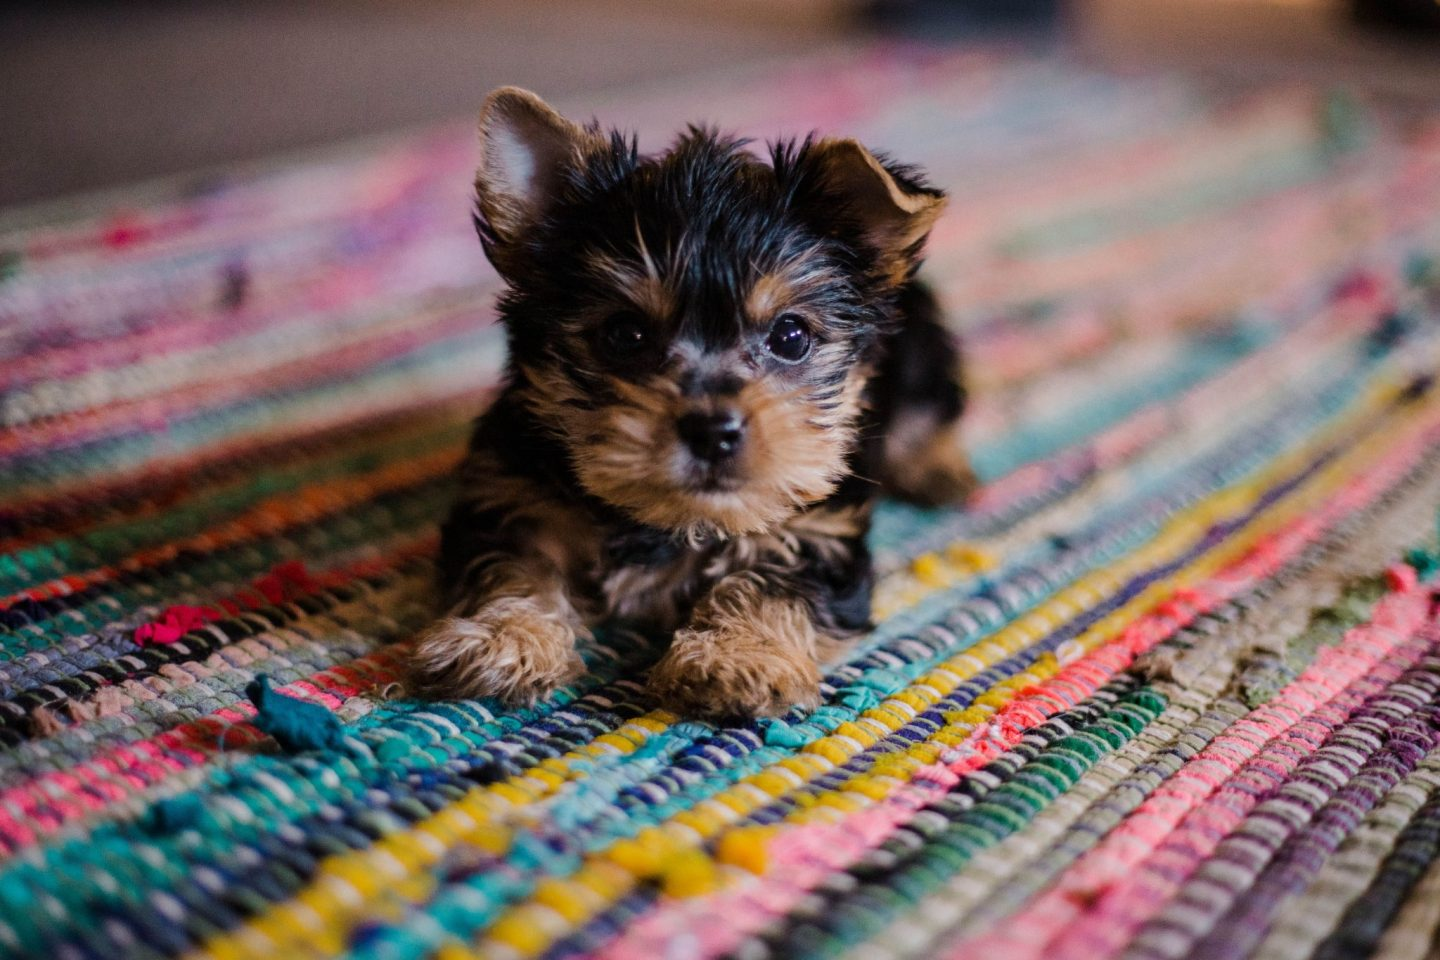 HOW TO PREPARE YOUR HOME FOR A PUPPY